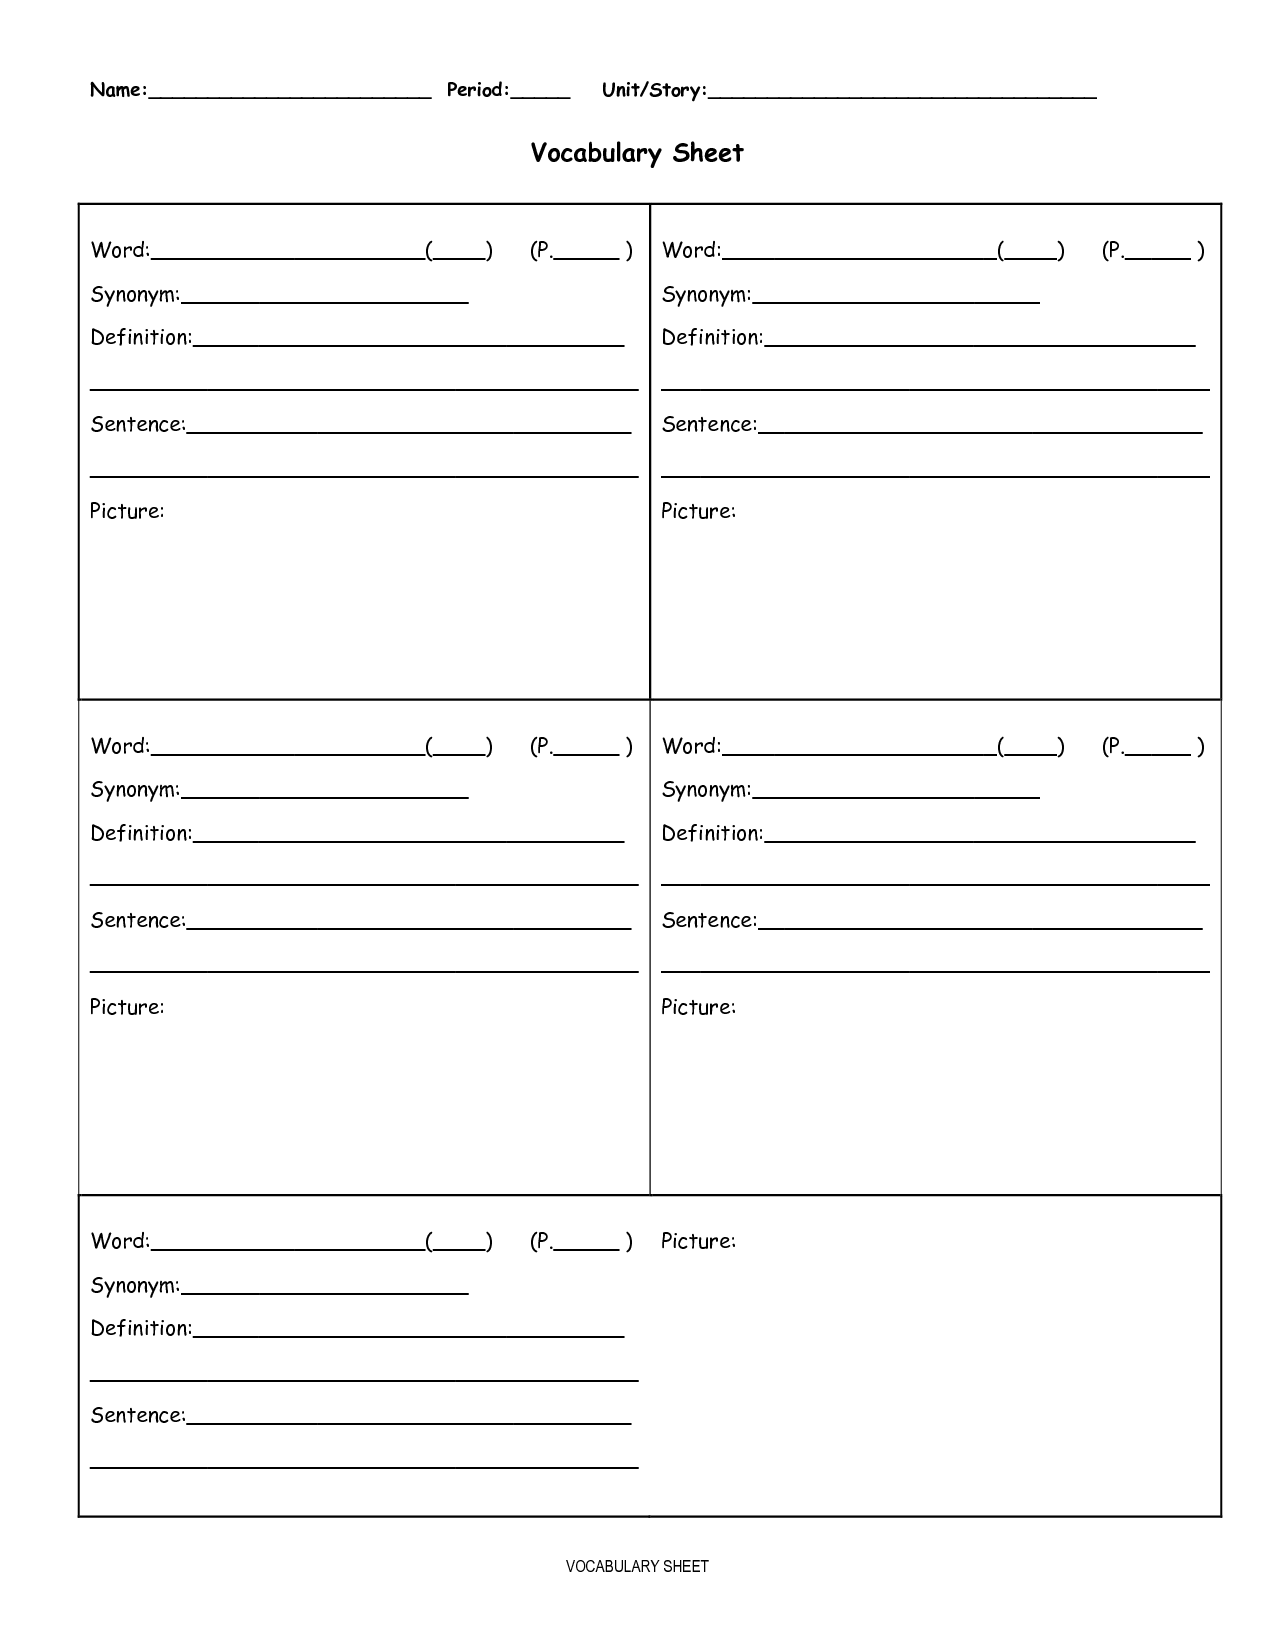 Worksheets Blank Vocabulary Worksheet Cheatslist Free